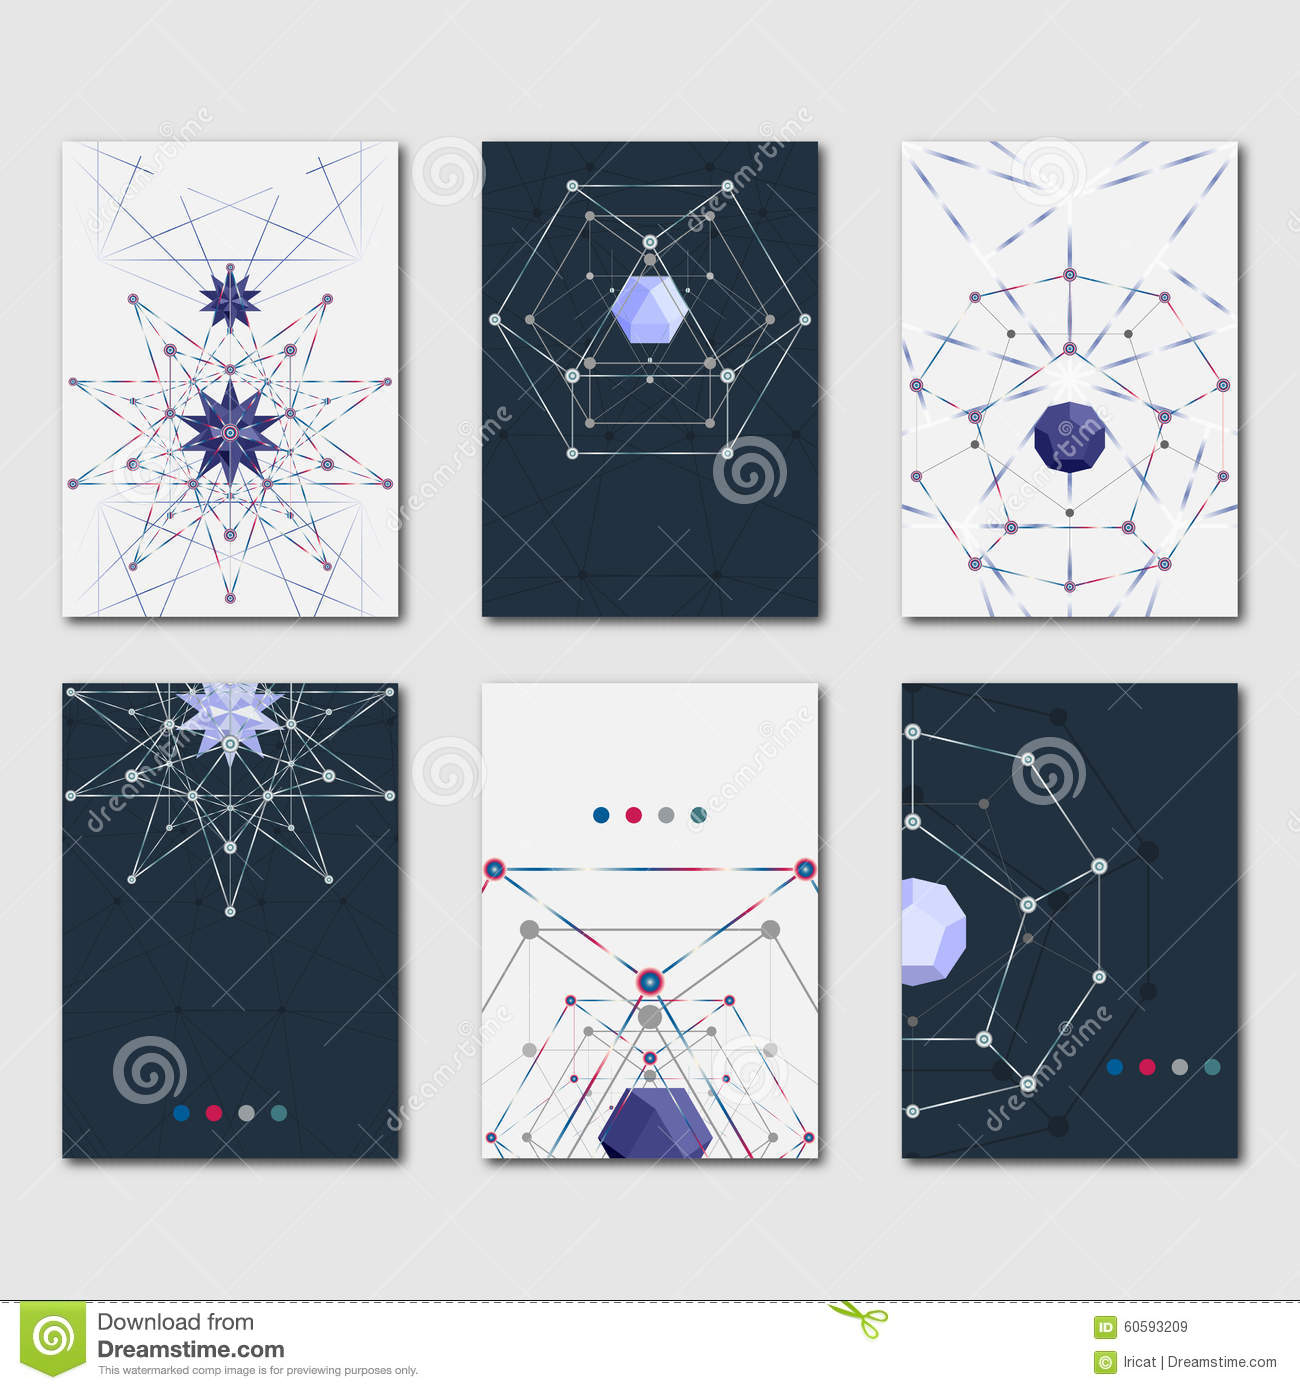 0735ff45030bc6 Set of abstract polygonal template for design business and scientific  brochures, flyers and presentations. Modern stylish graphics banners.